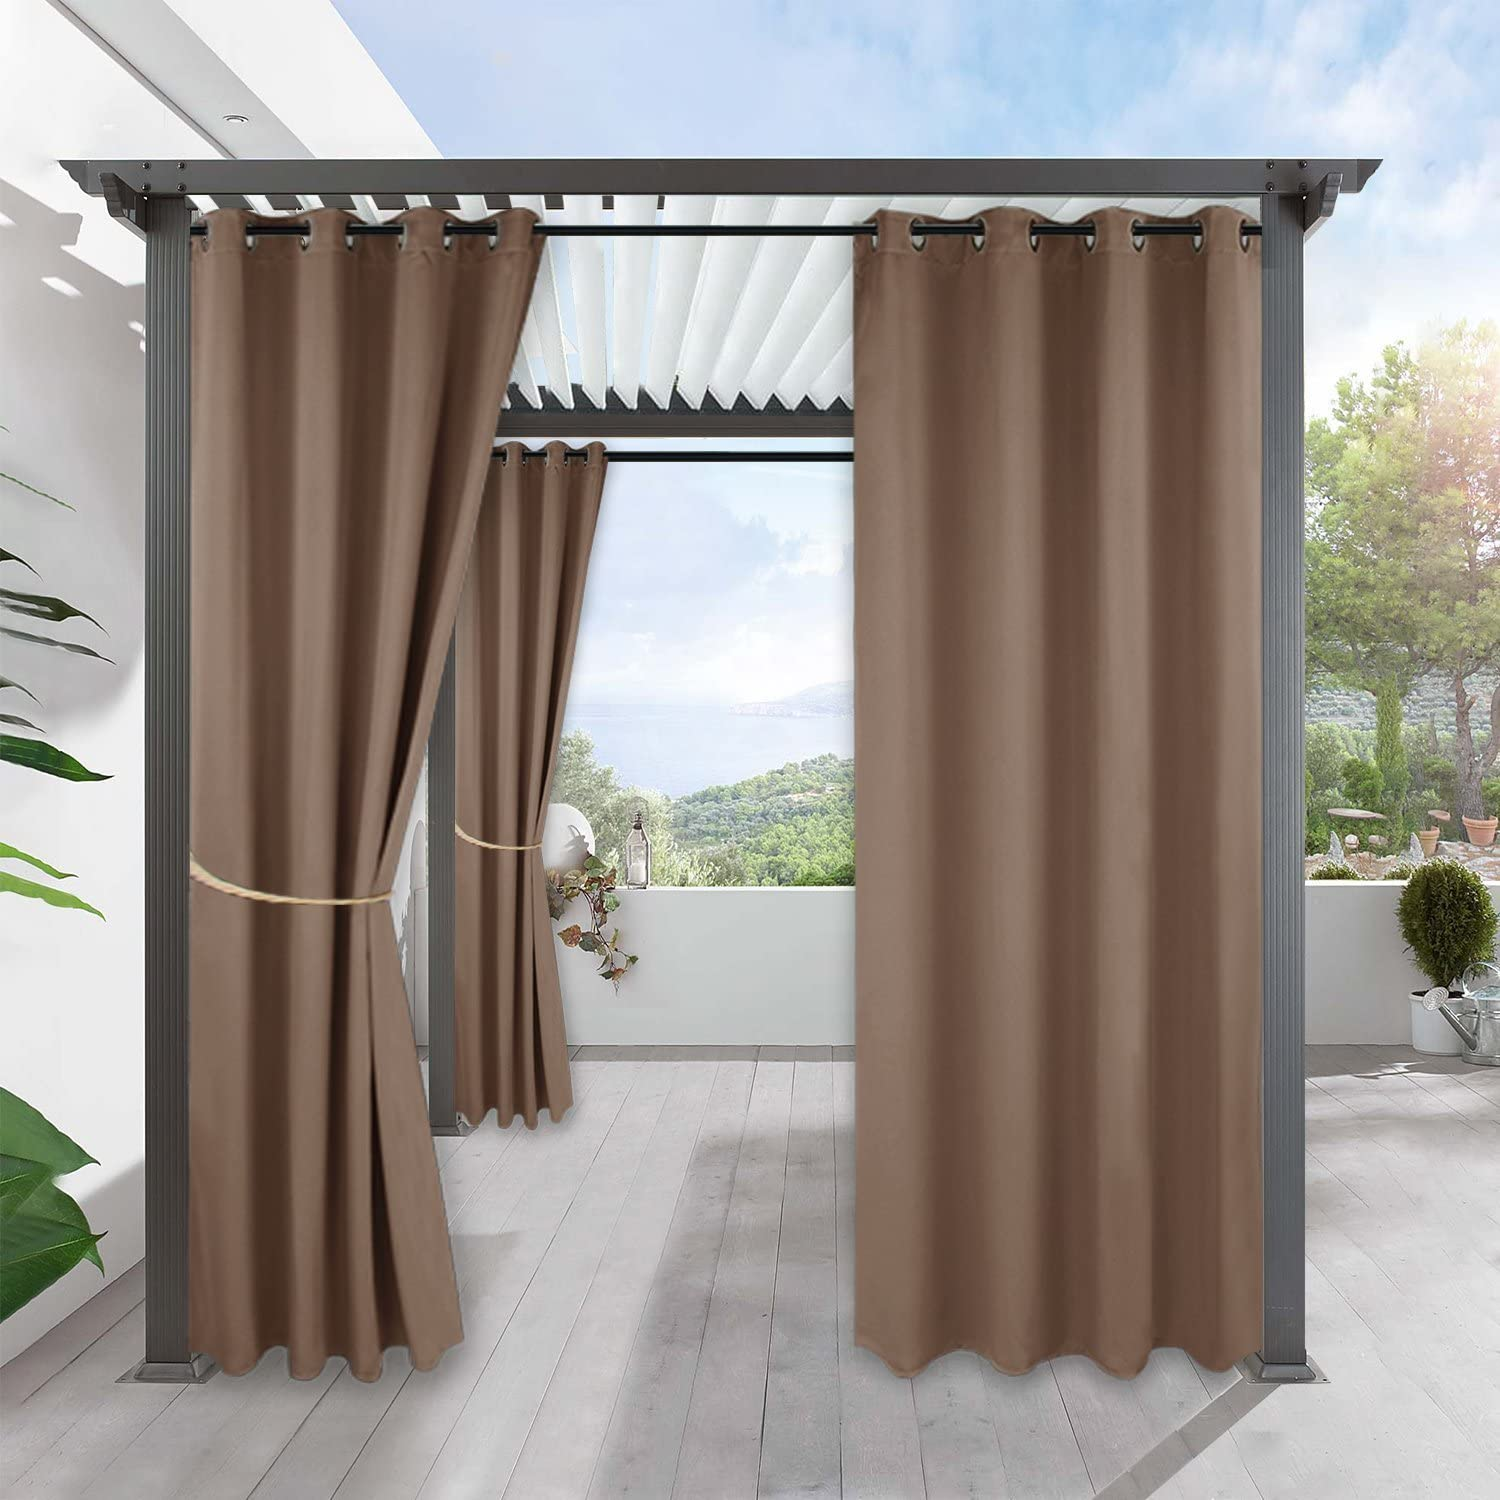 RYB HOME Outdoor Pergola Curtain - Waterproof Windproof Exterior Drapery Privacy for Patio Door Front Porch Back Yard Arbor Party Activity, 52-inch Width x 120-inch Length, 1 Panel, Mocha